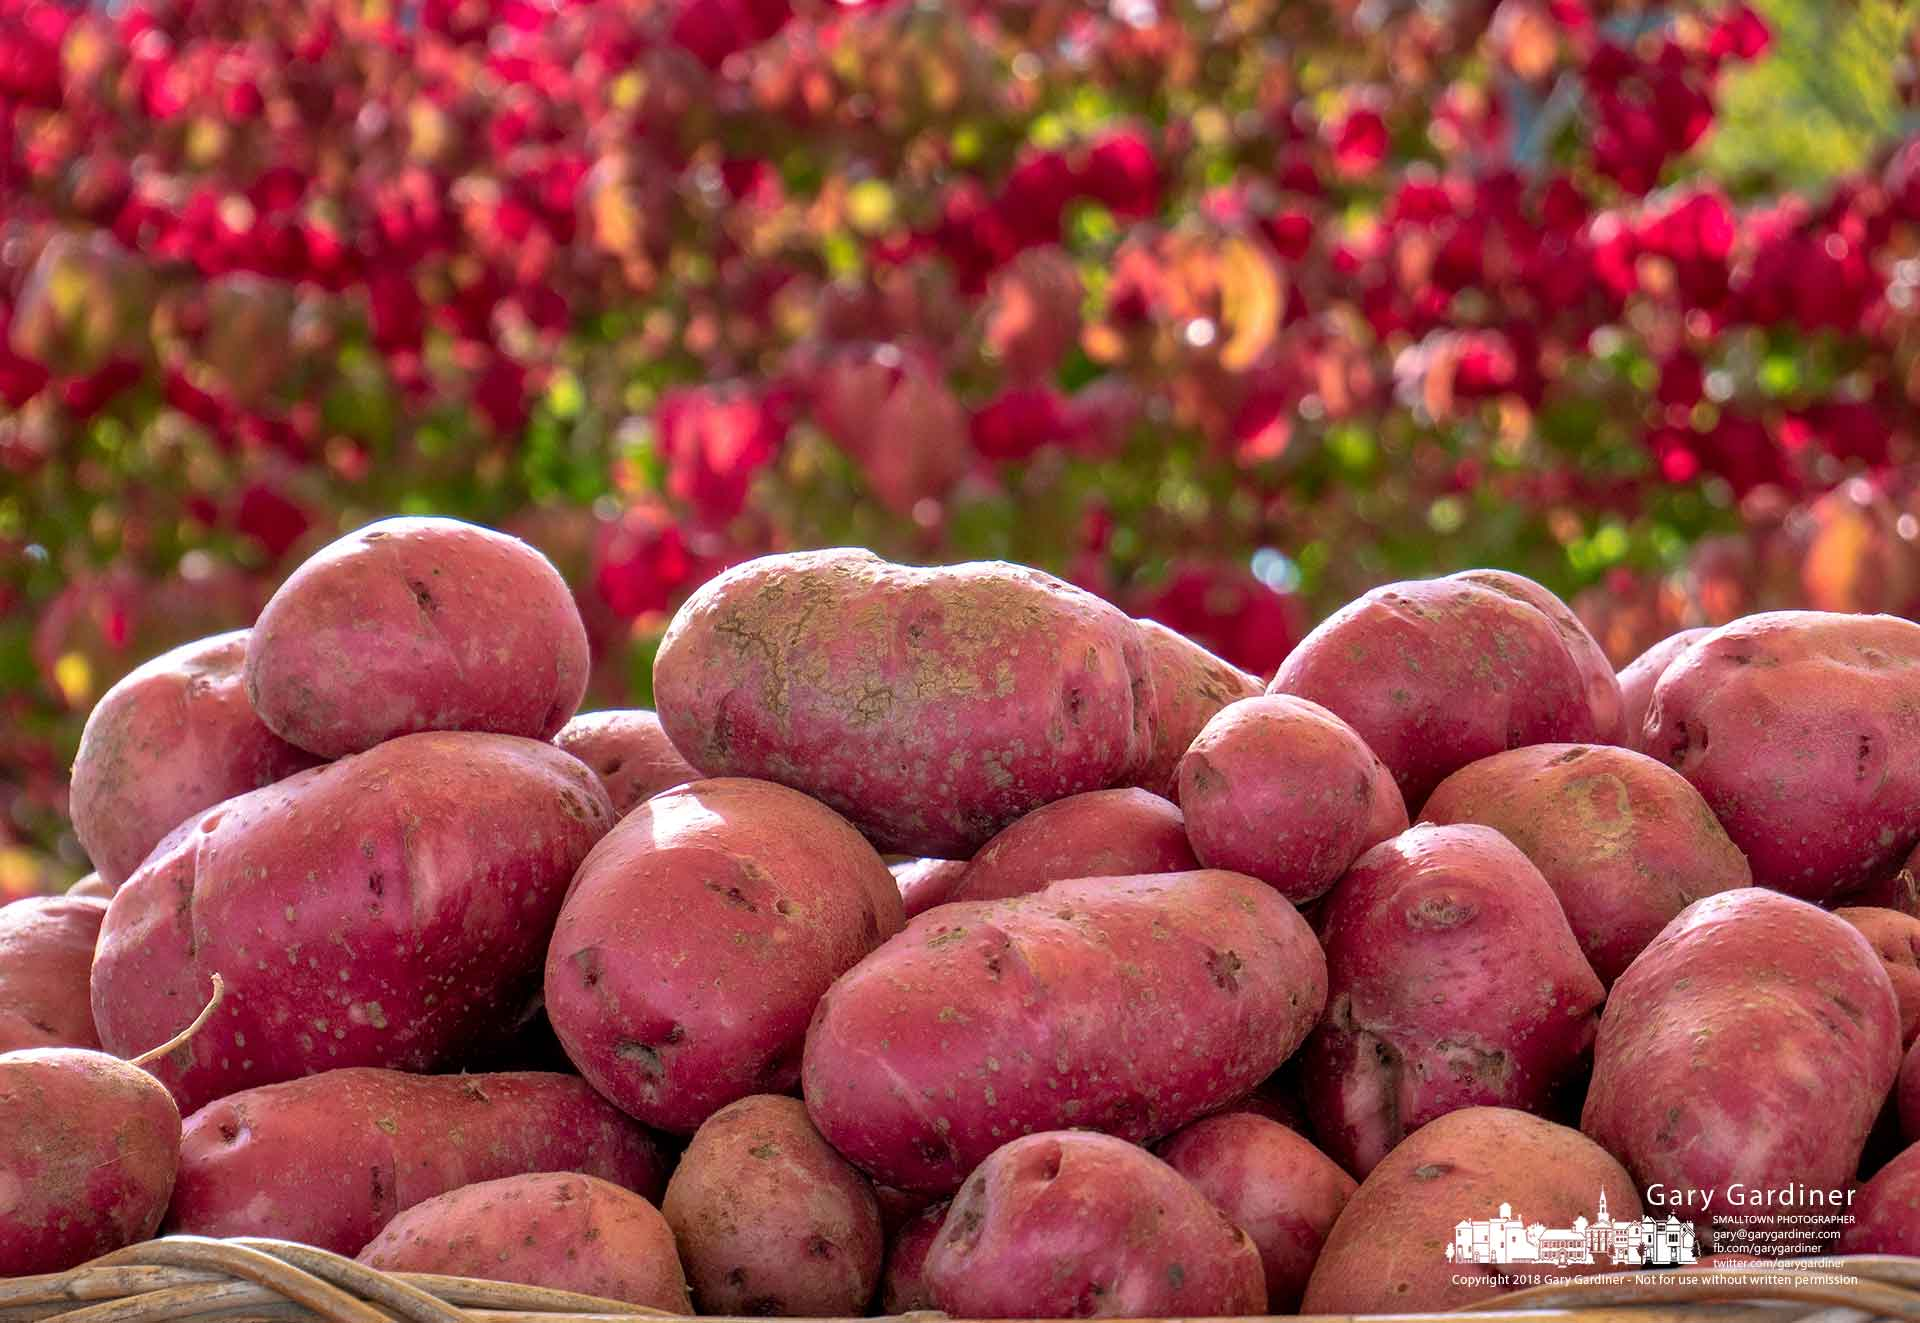 Freshly harvested and washed red potatoes sit in a basket ready for shoppers at the Bird's Haven Farm tent at the Wednesday Market in Uptown Westerville. My Final Photo for Oct. 3, 2018.